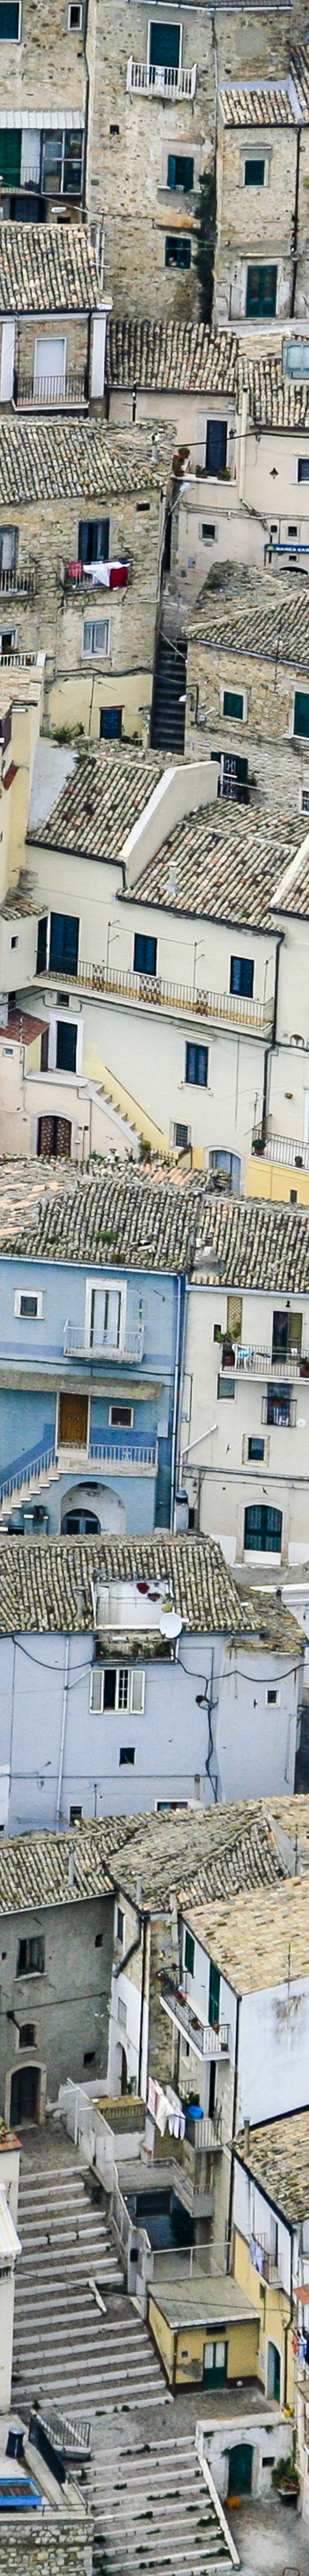 Aerial view of the colourful houses of Sant Agata di Puglia in Apulia, Italy - Klaus Leidorf Aerial Photography